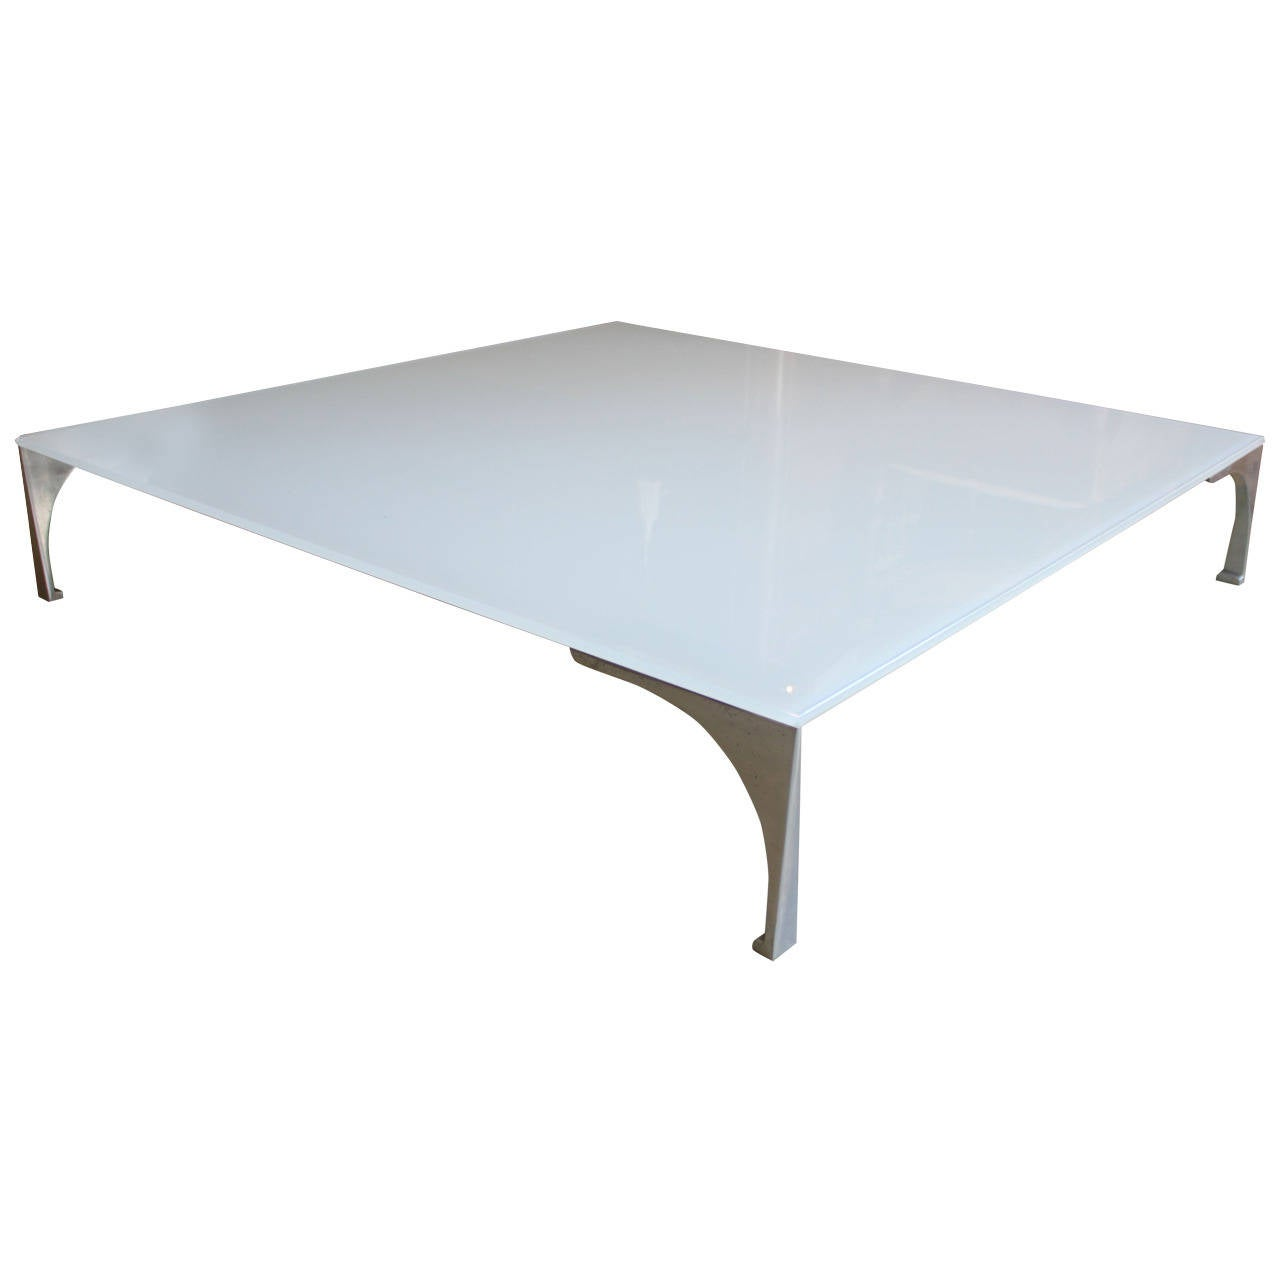 Roche bobois metropolis low coffee or cocktail table 20th century at 1stdibs Roche bobois coffee table